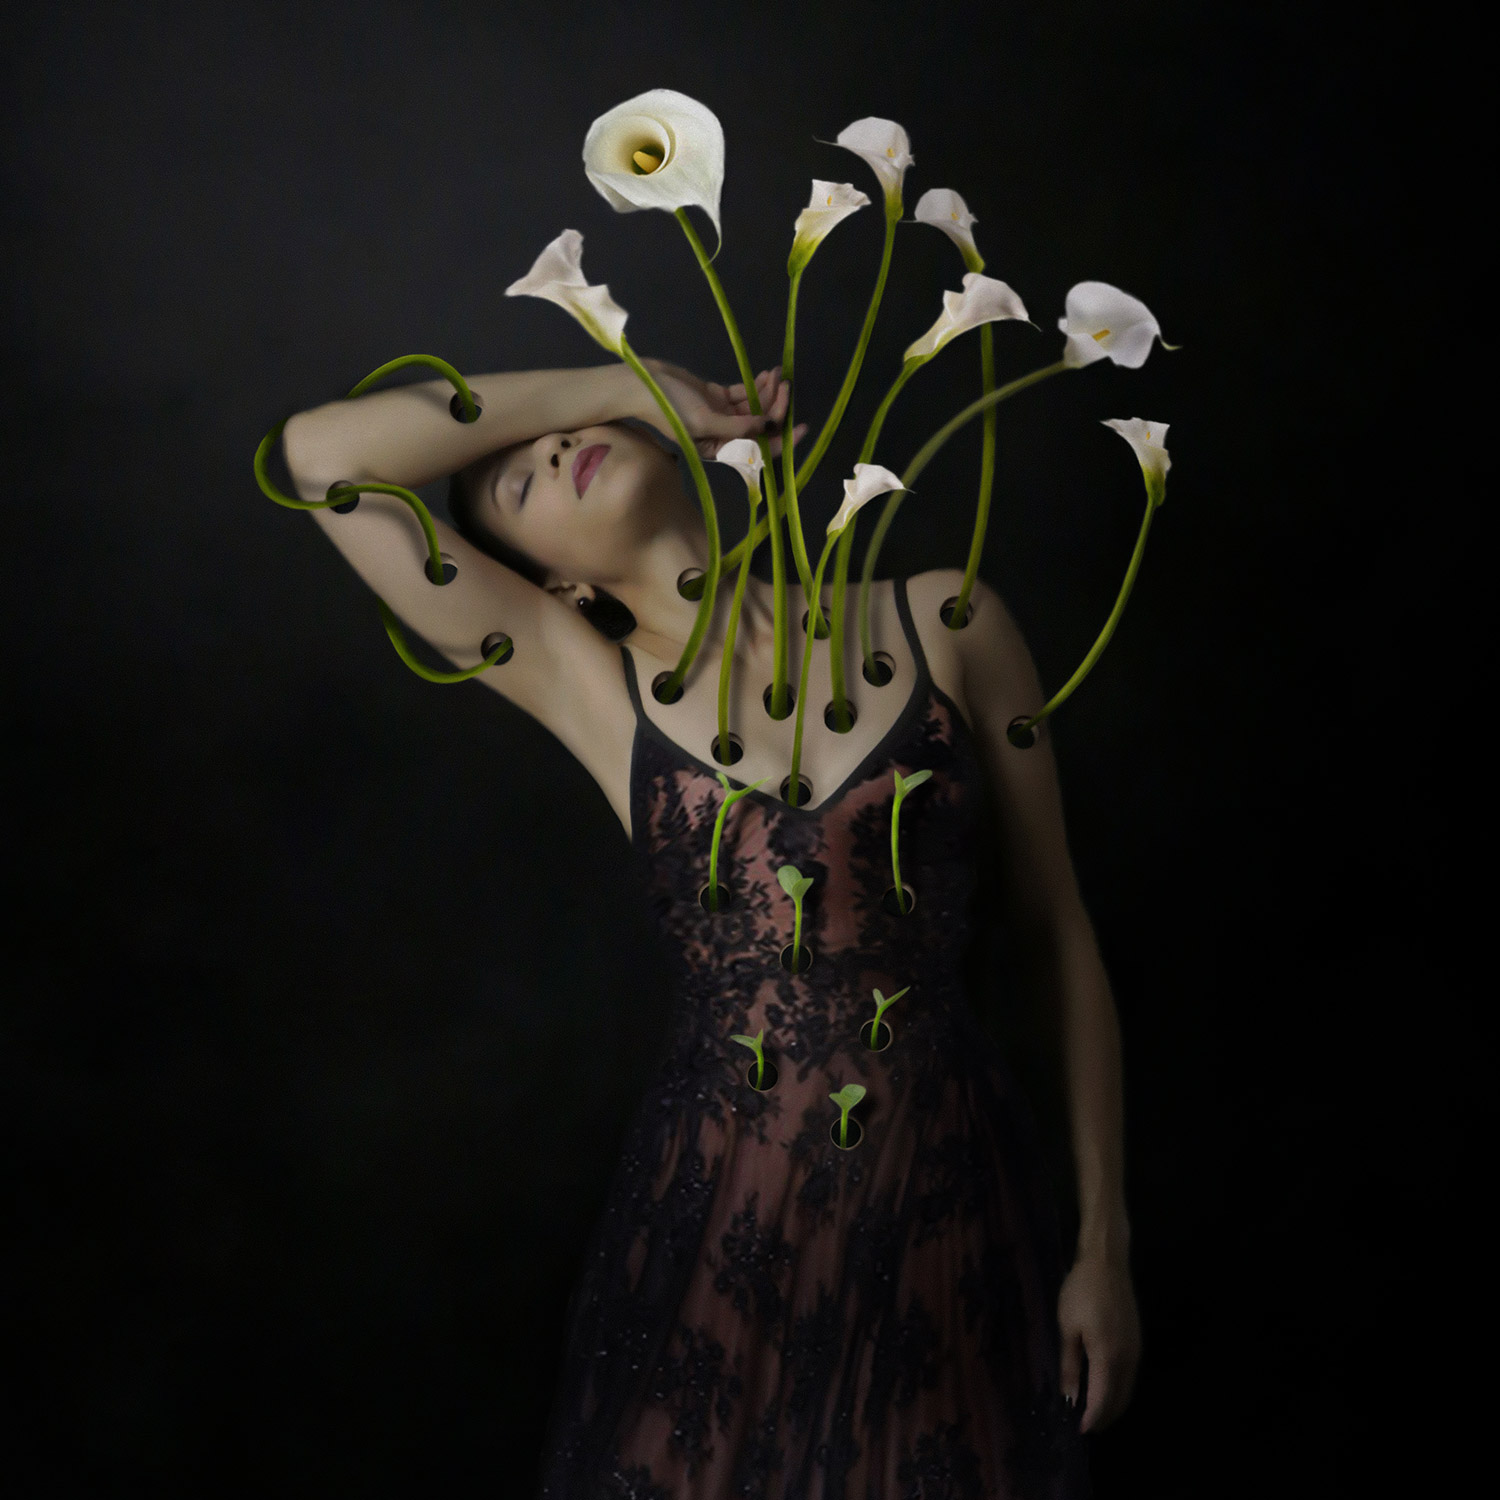 Josephine Cardin - regrowth